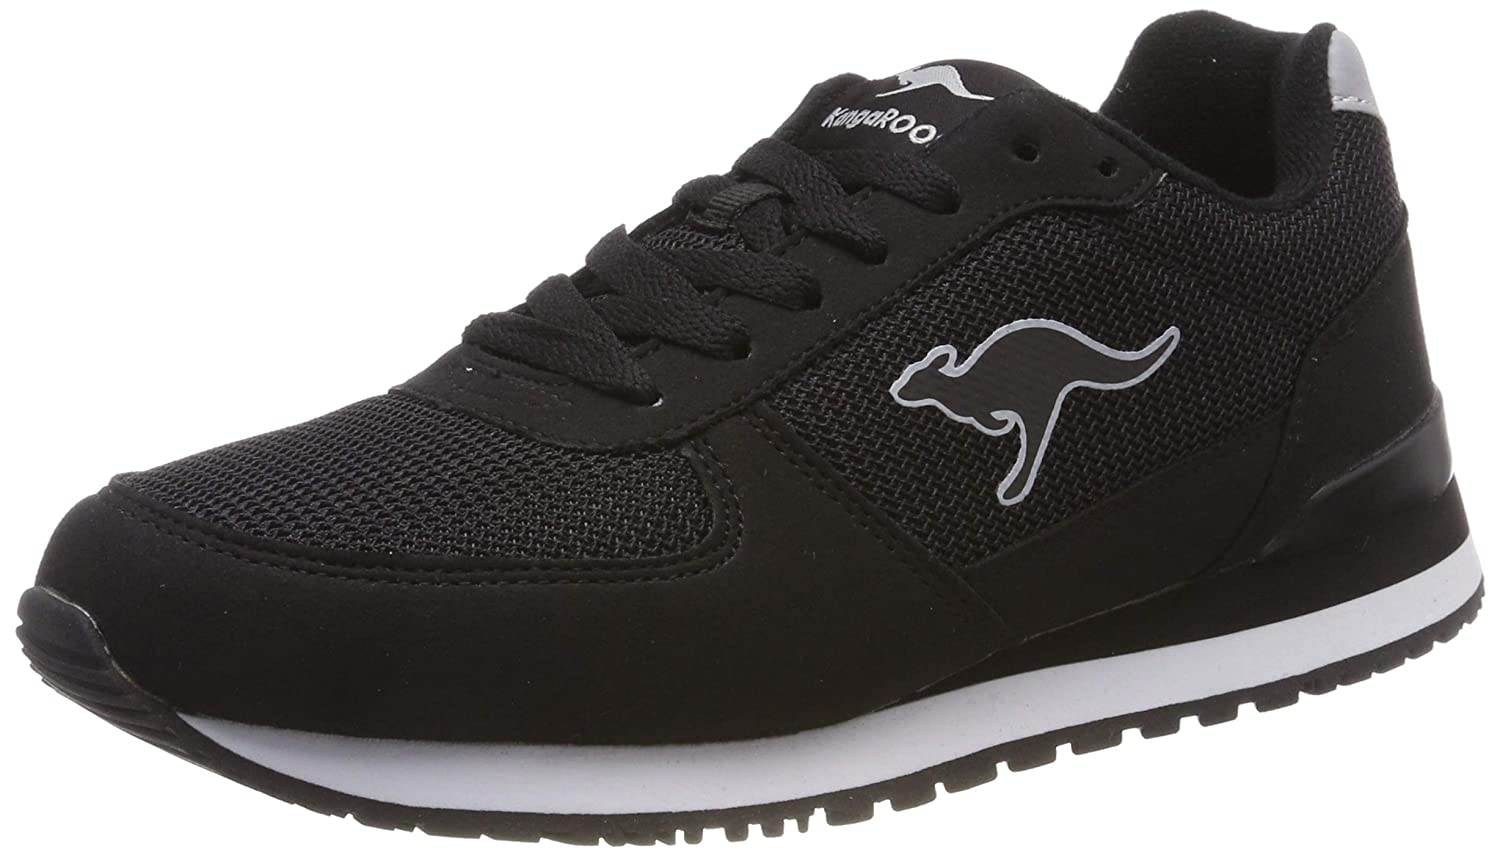 c8e5c72092a Amazon.com | KangaROOS Unisex's Retro Racer Trainers, Schwarz (Jet Black  5001), 8 UK | Fashion Sneakers